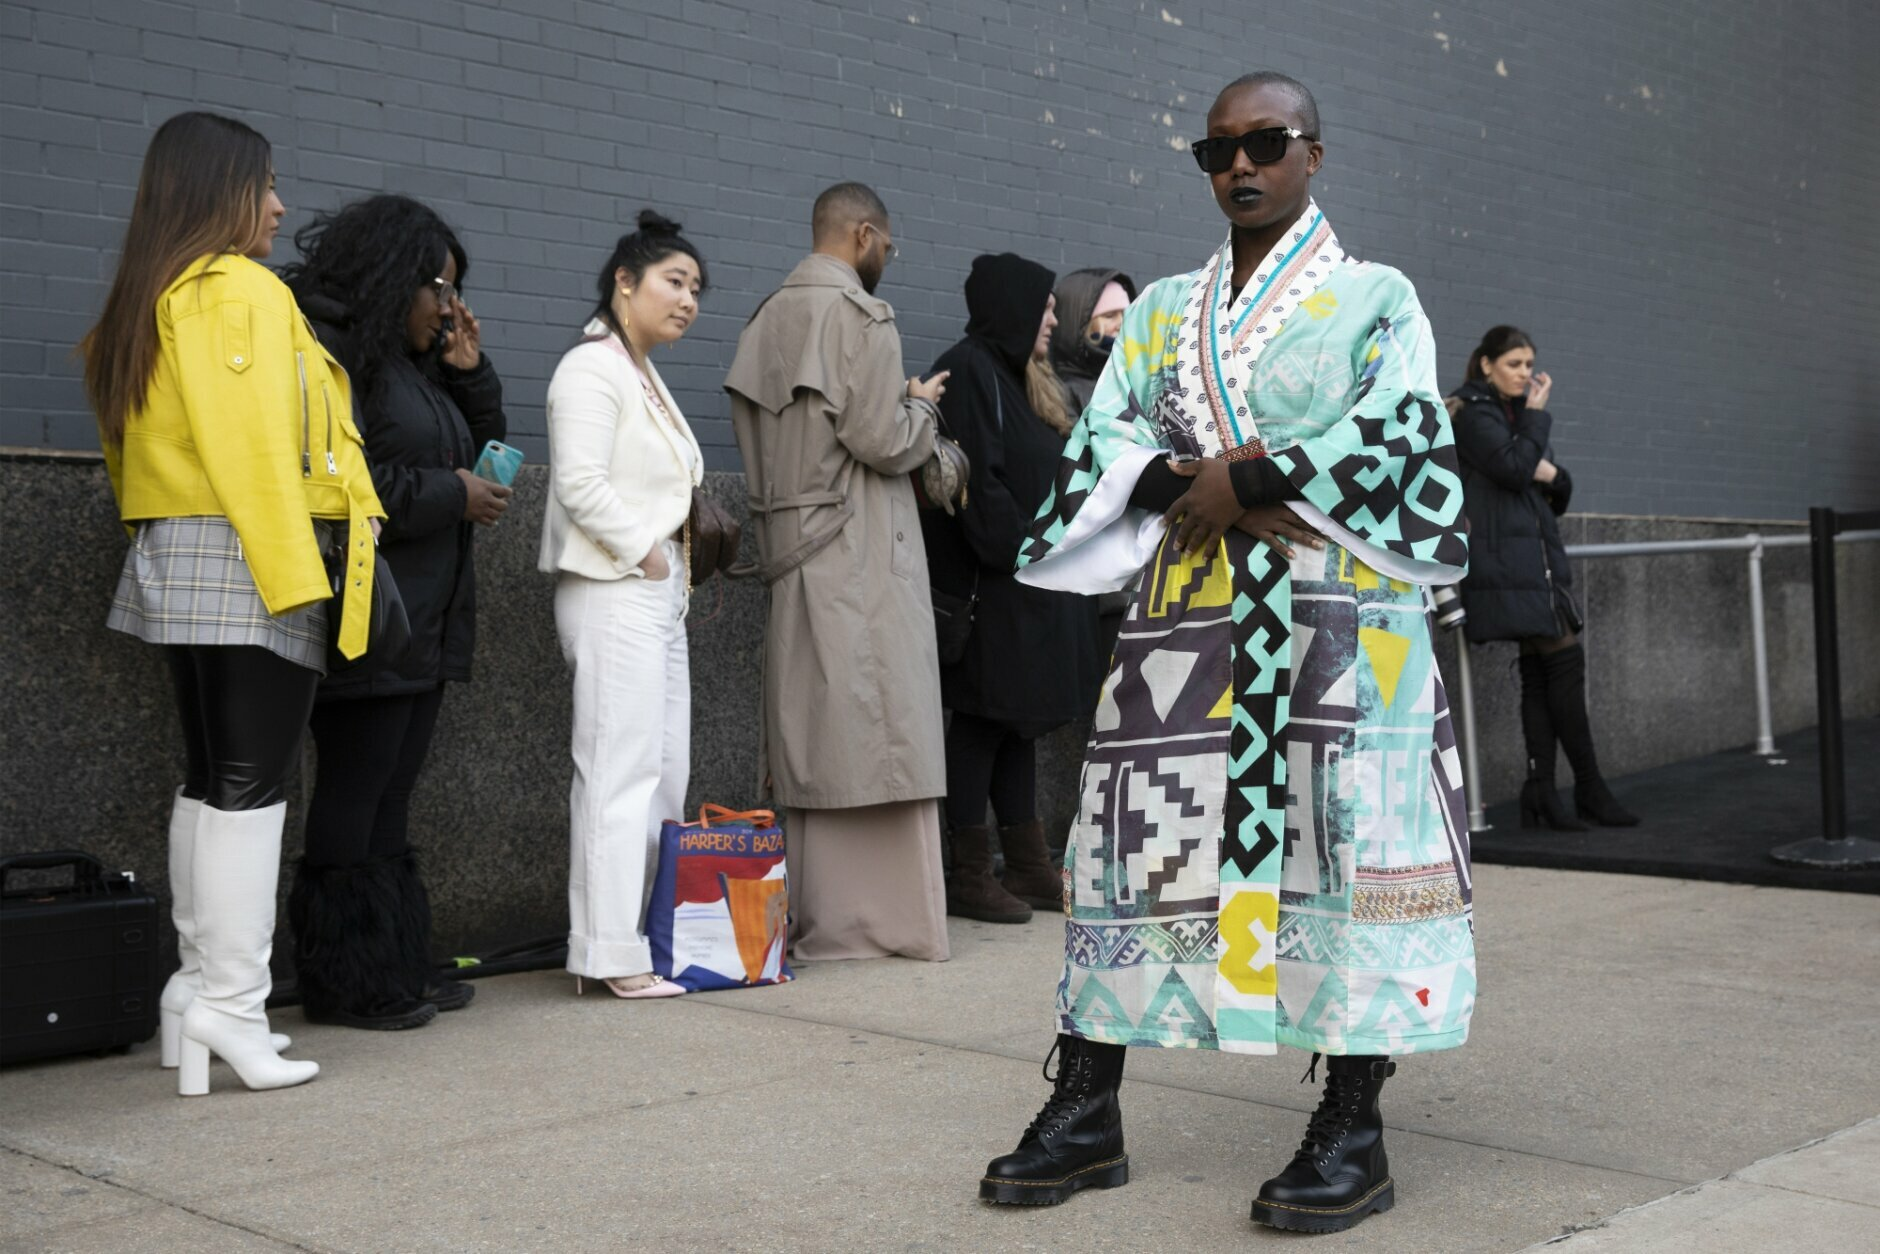 Sabrina-Anne Sarpong, founder of British media platform DSTNGR, poses for photographers outside a show during Fashion Week, Wednesday, Feb. 12, 2020, in New York. (AP Photo/Mark Lennihan)